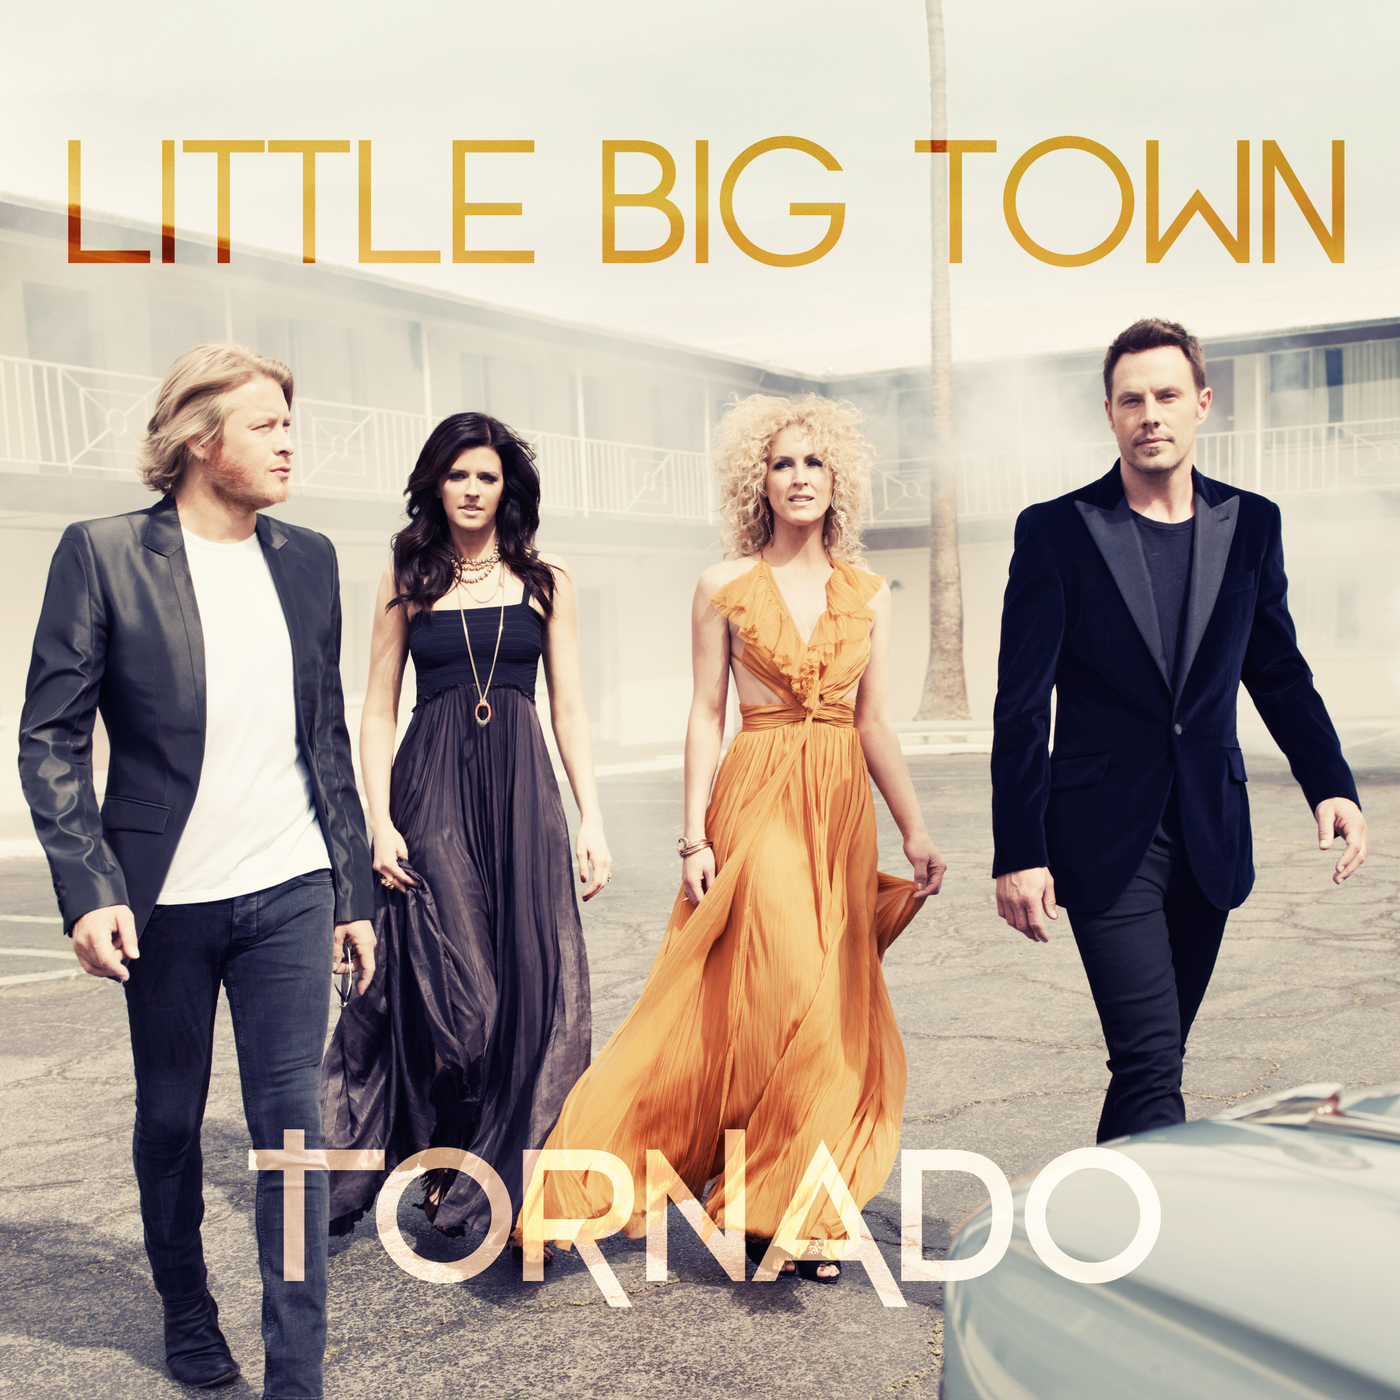 All songs little big town for android free download and software.